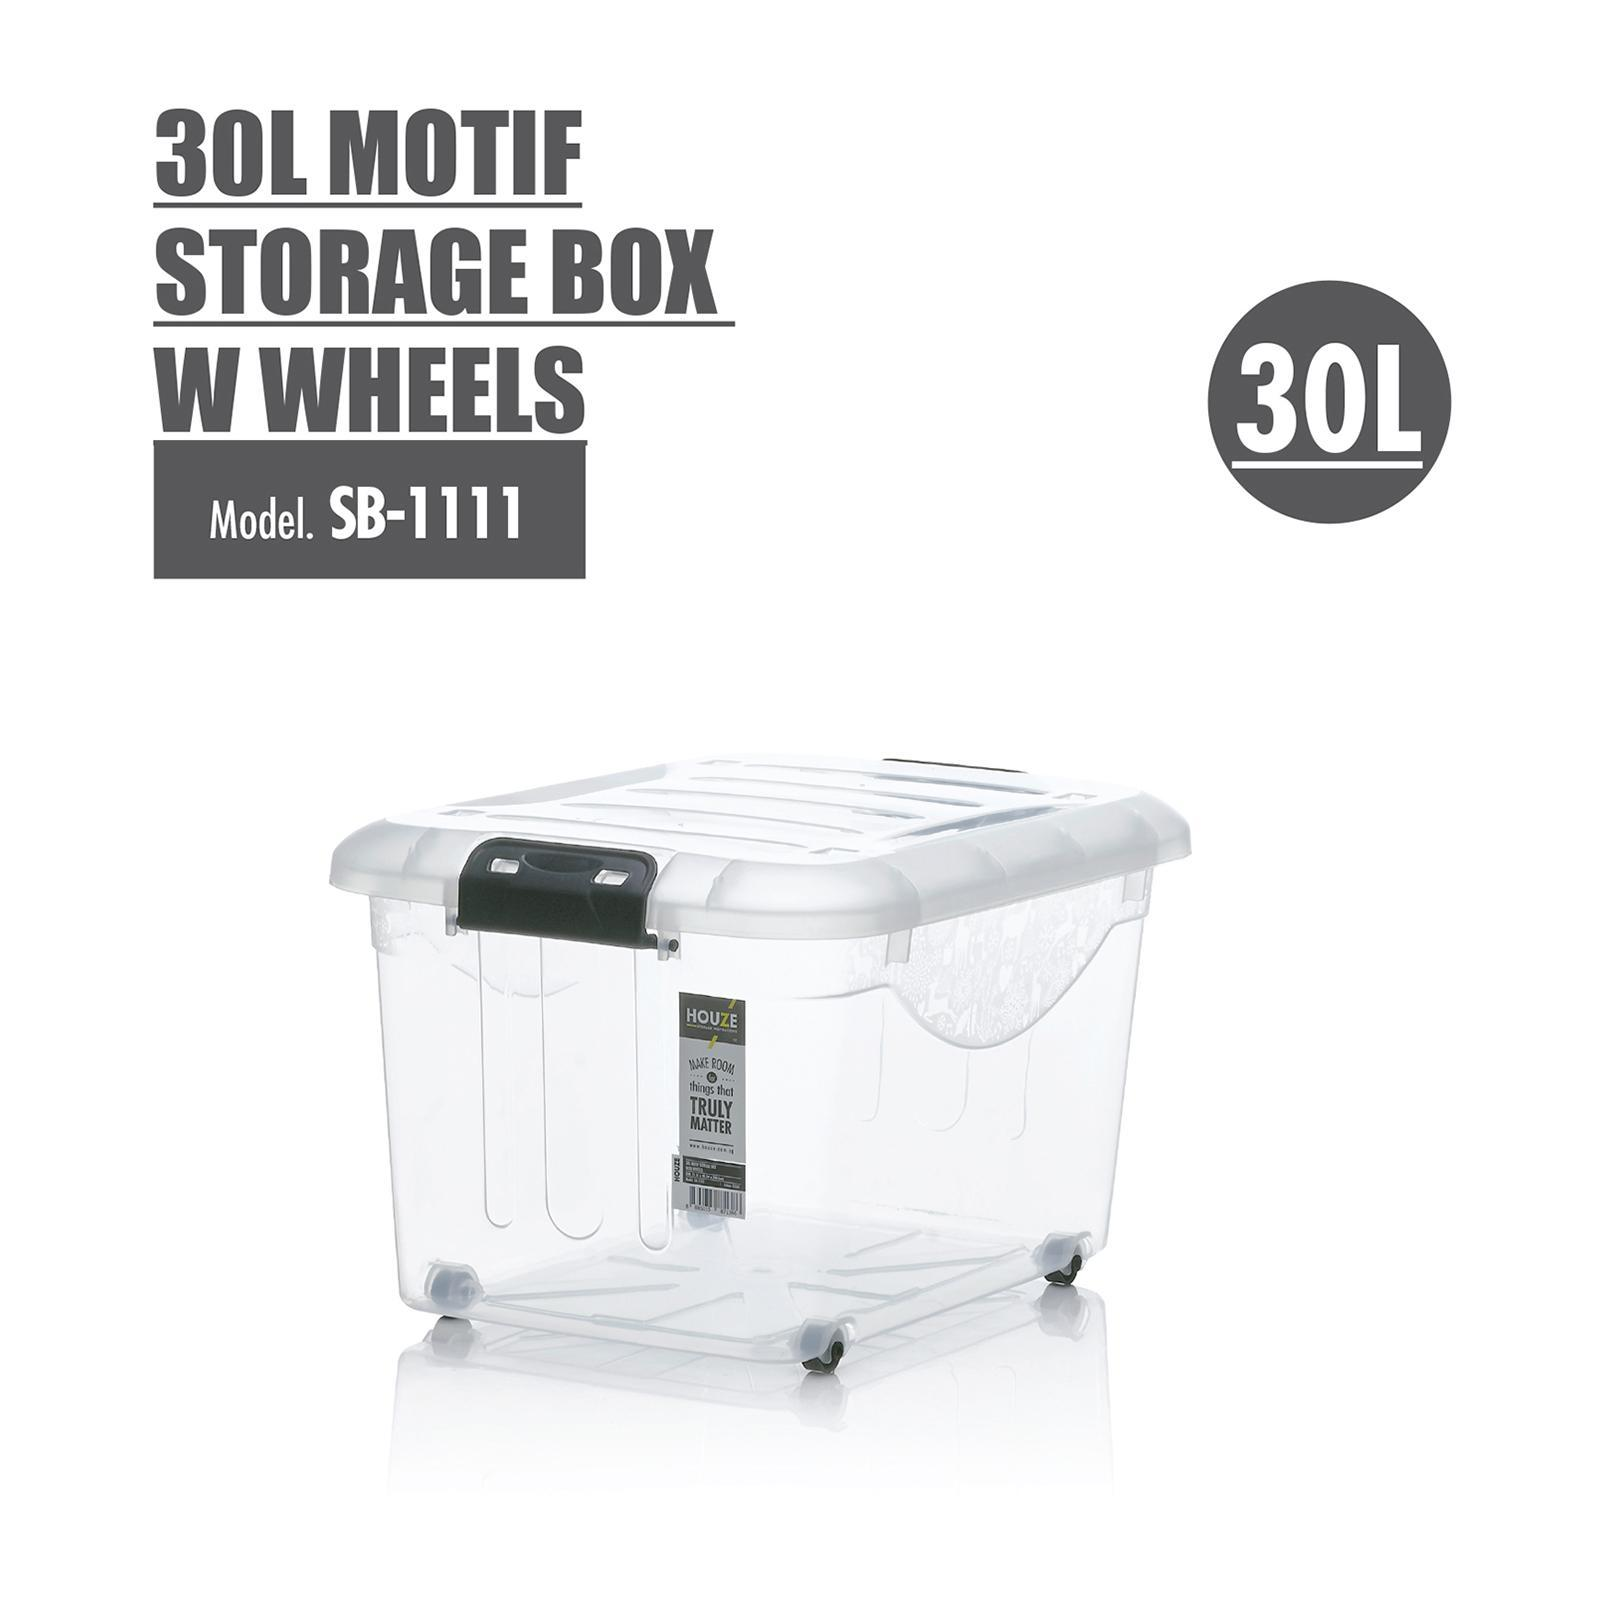 Houze 30L Motif Storage Box With Wheels - SB-1111-CLEAR